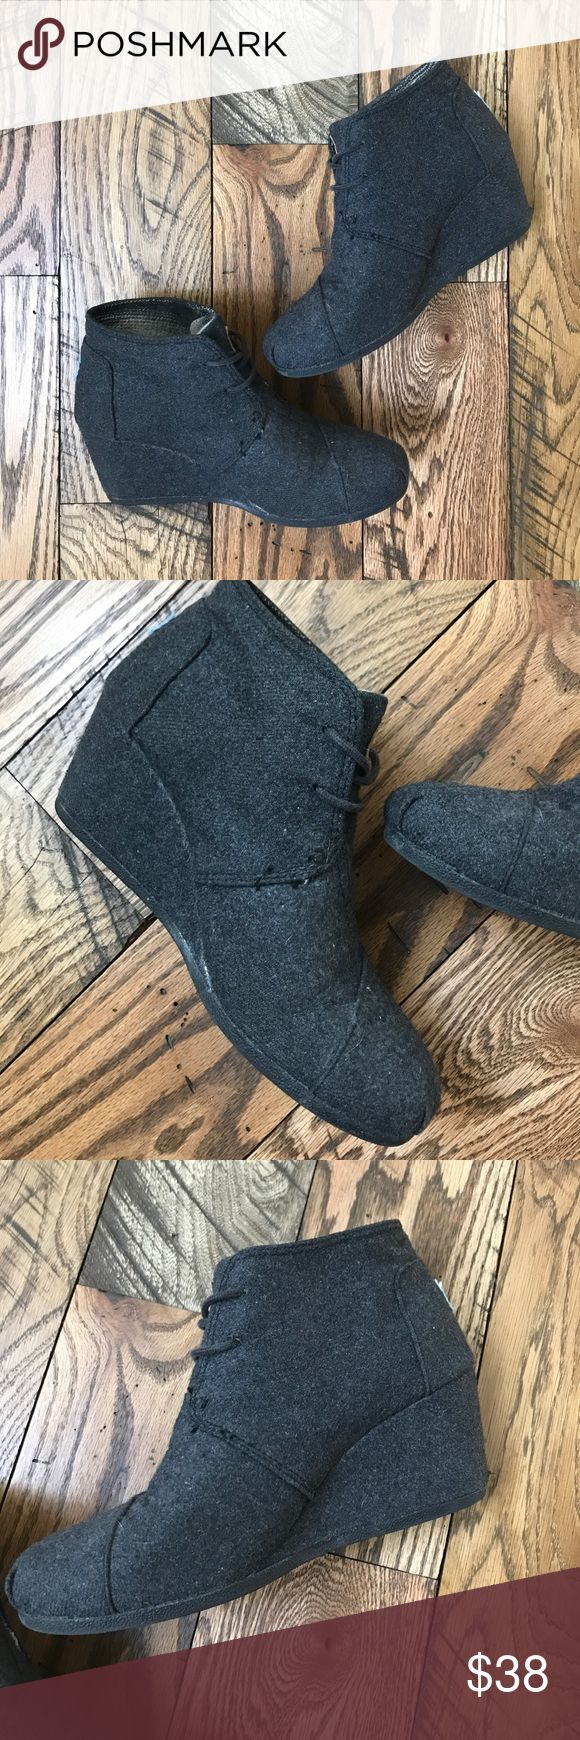 TOMS Desert Wedge Bootie 'Charcoal Gray' Charcoal gray TOMS Desert Wedge size 8.5💗 super cute and so comfortable! In really good used condition! Fit tts. Toms Shoes Ankle Boots & Booties